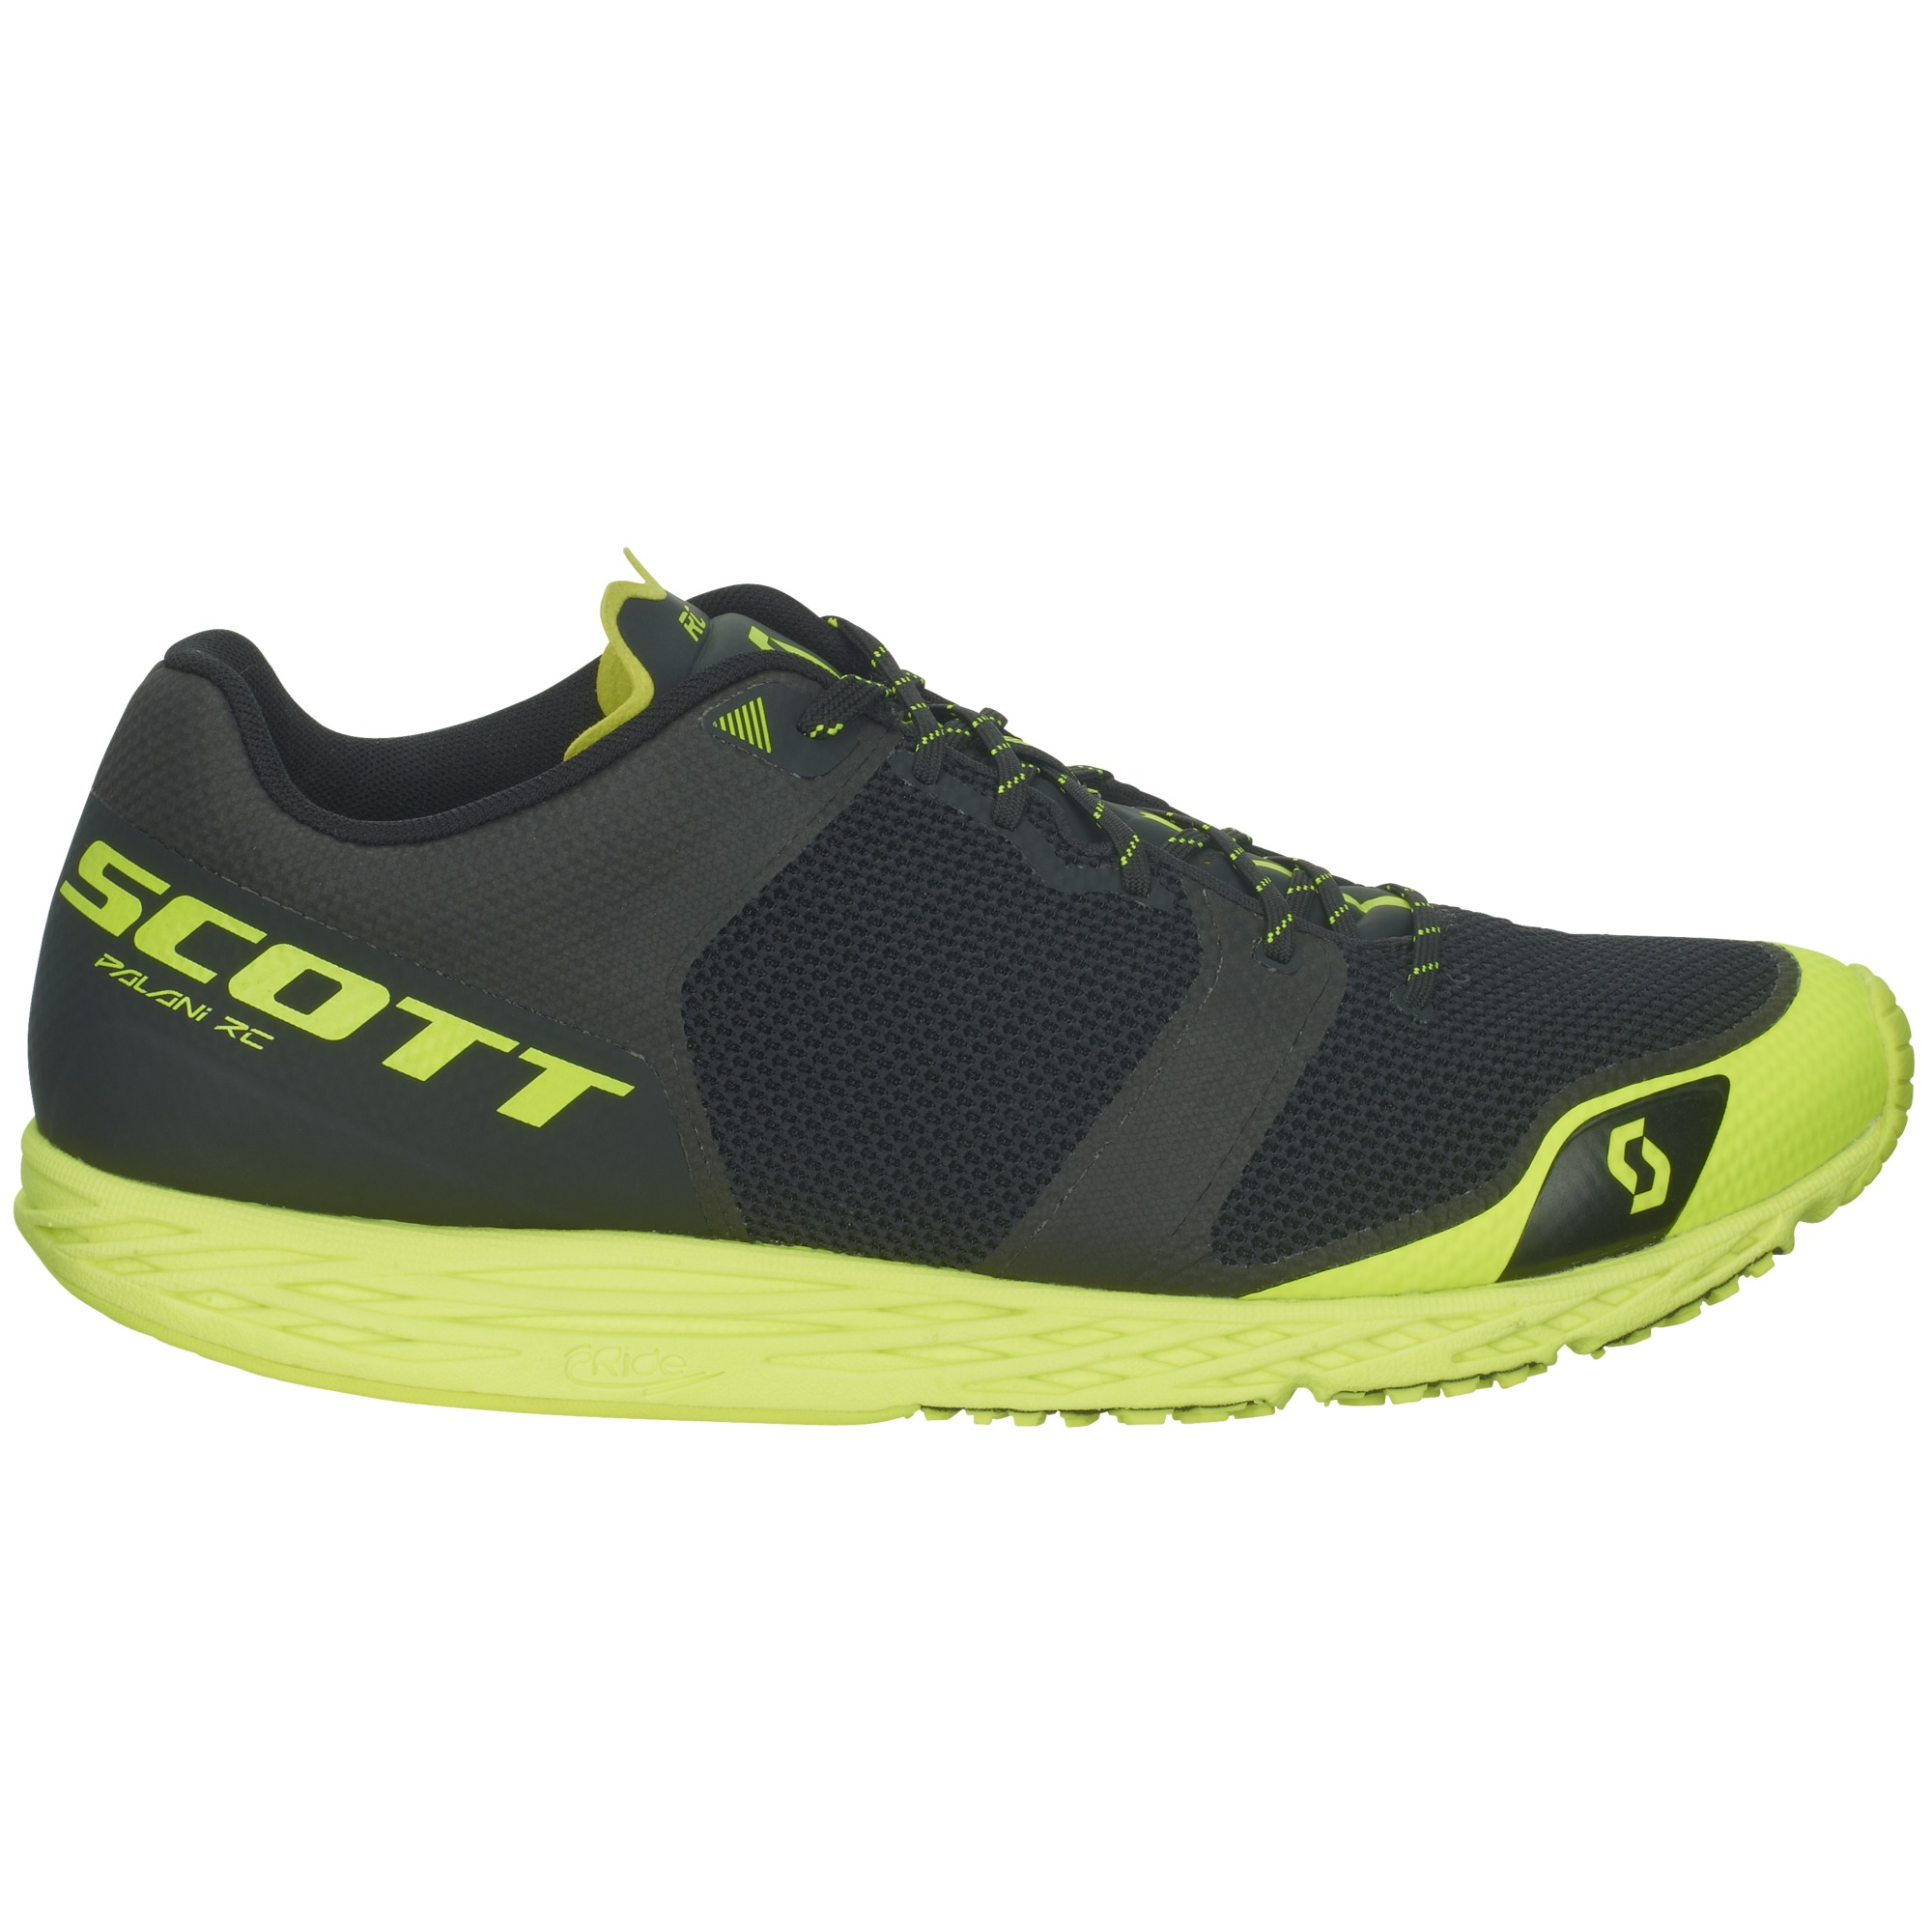 SCOTT Palani RC Women's Shoe